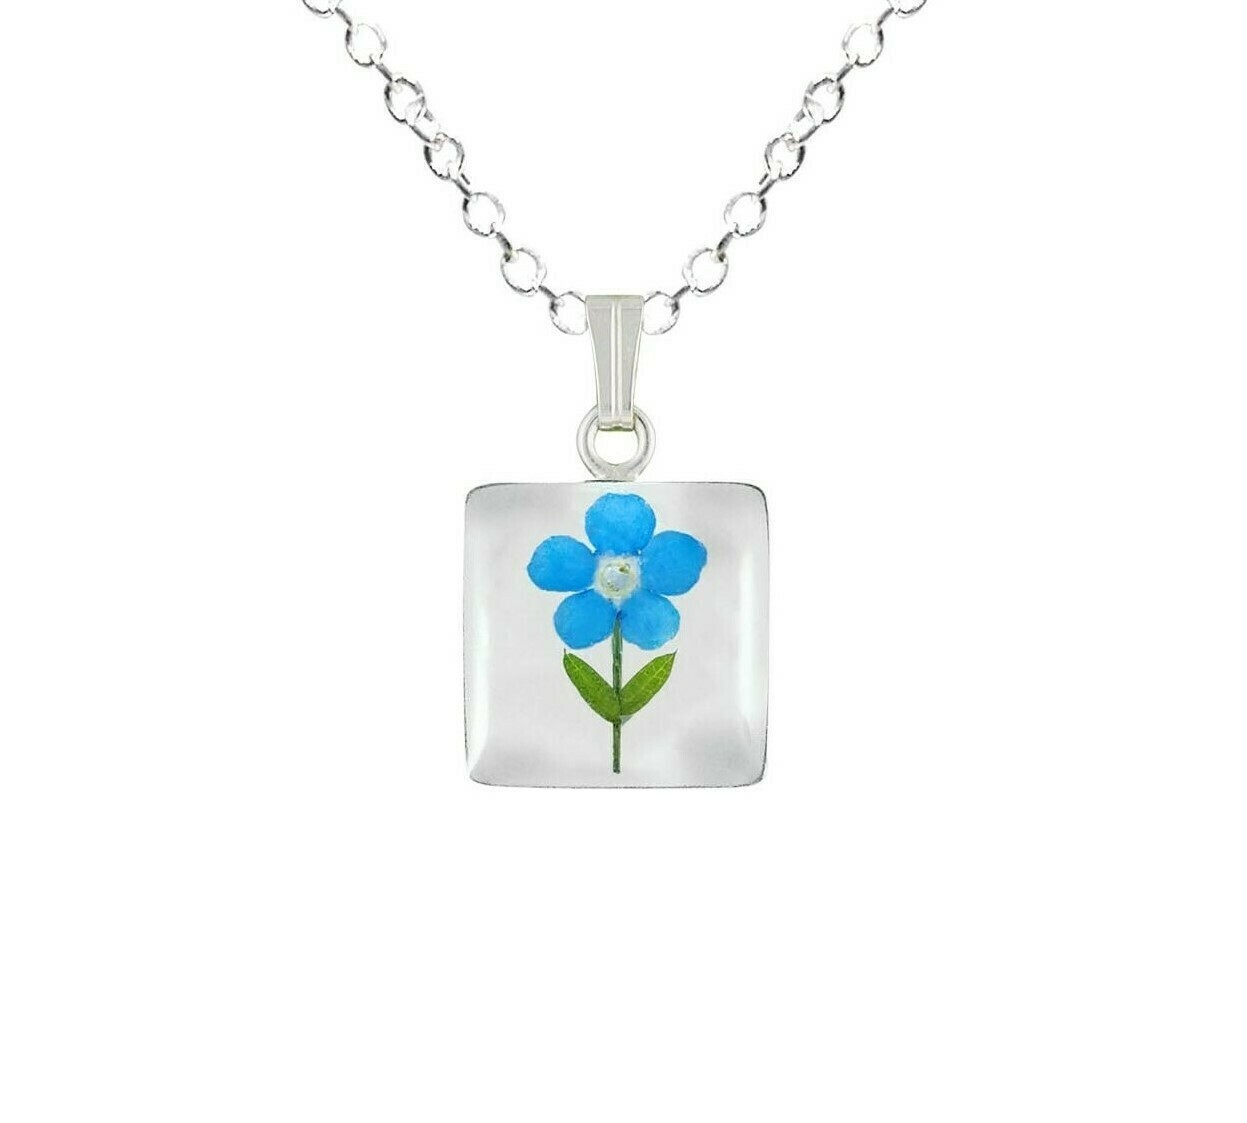 Forget-Me-Not Necklace, Small Square, White Background